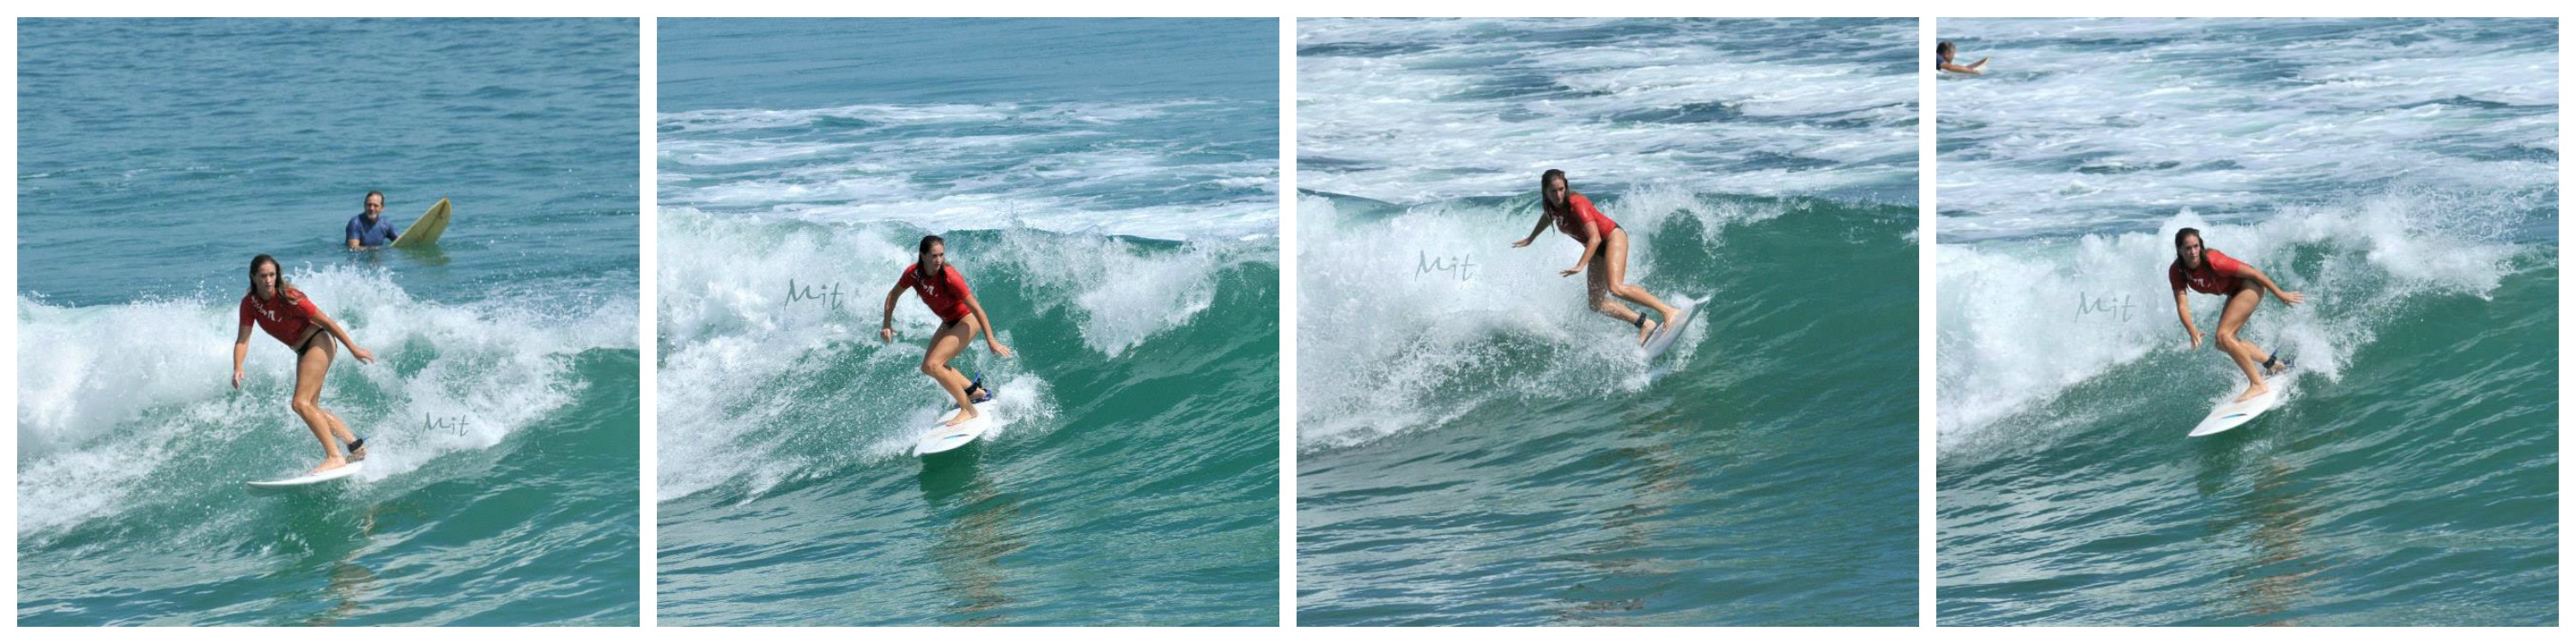 surf1 Collage